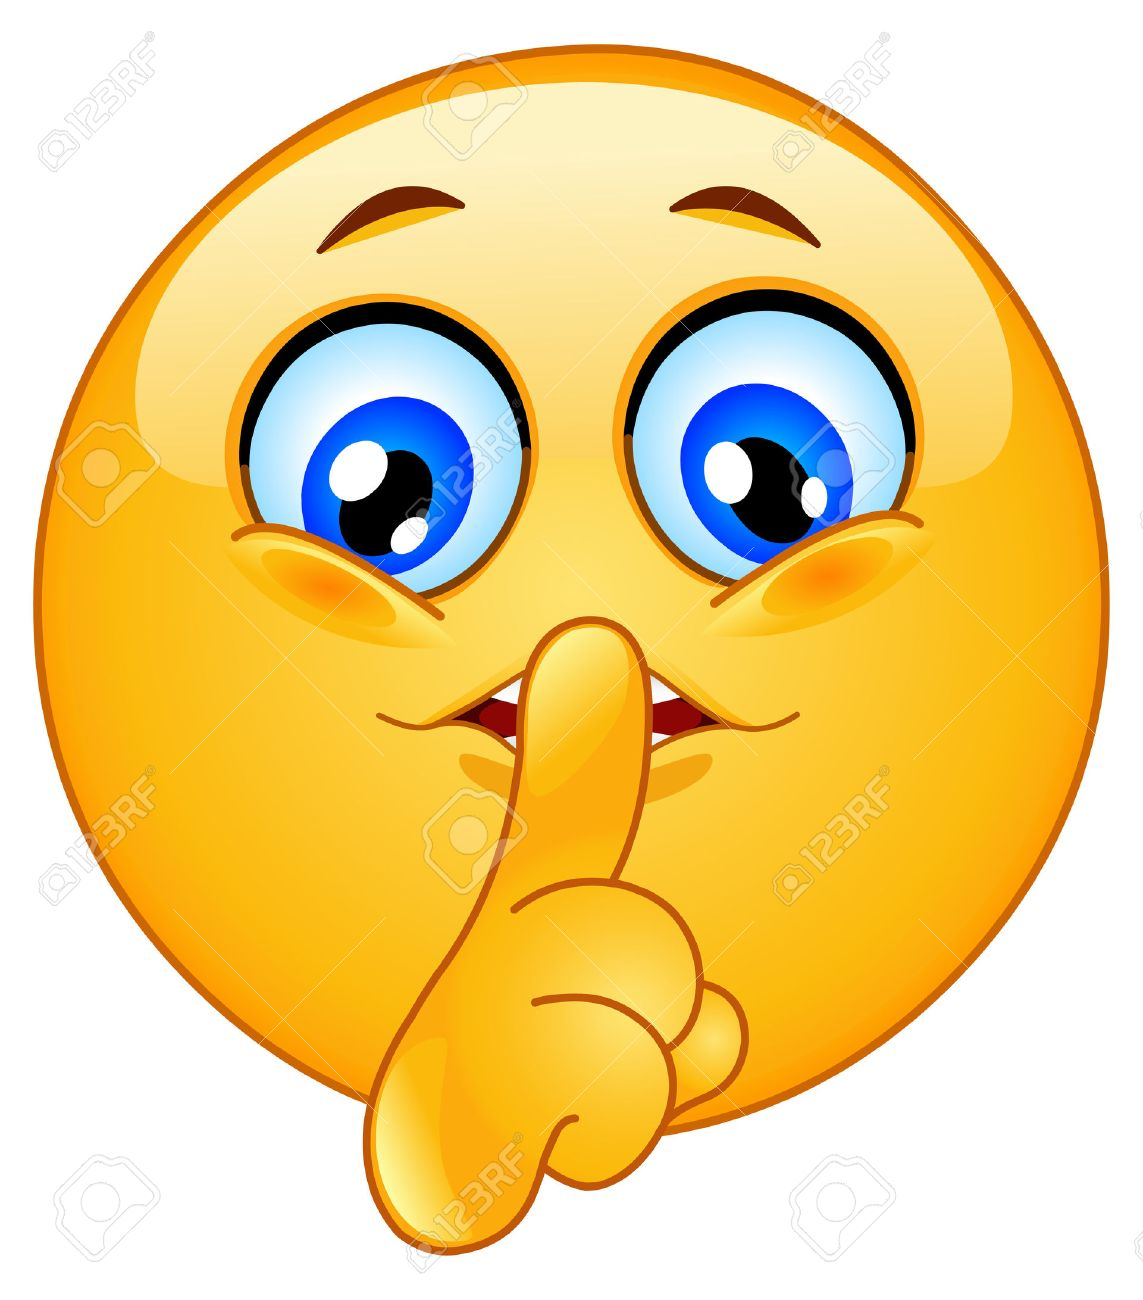 emoticon making silence sign royalty free cliparts, vectors, and stock  illustration. image 7699424.  123rf